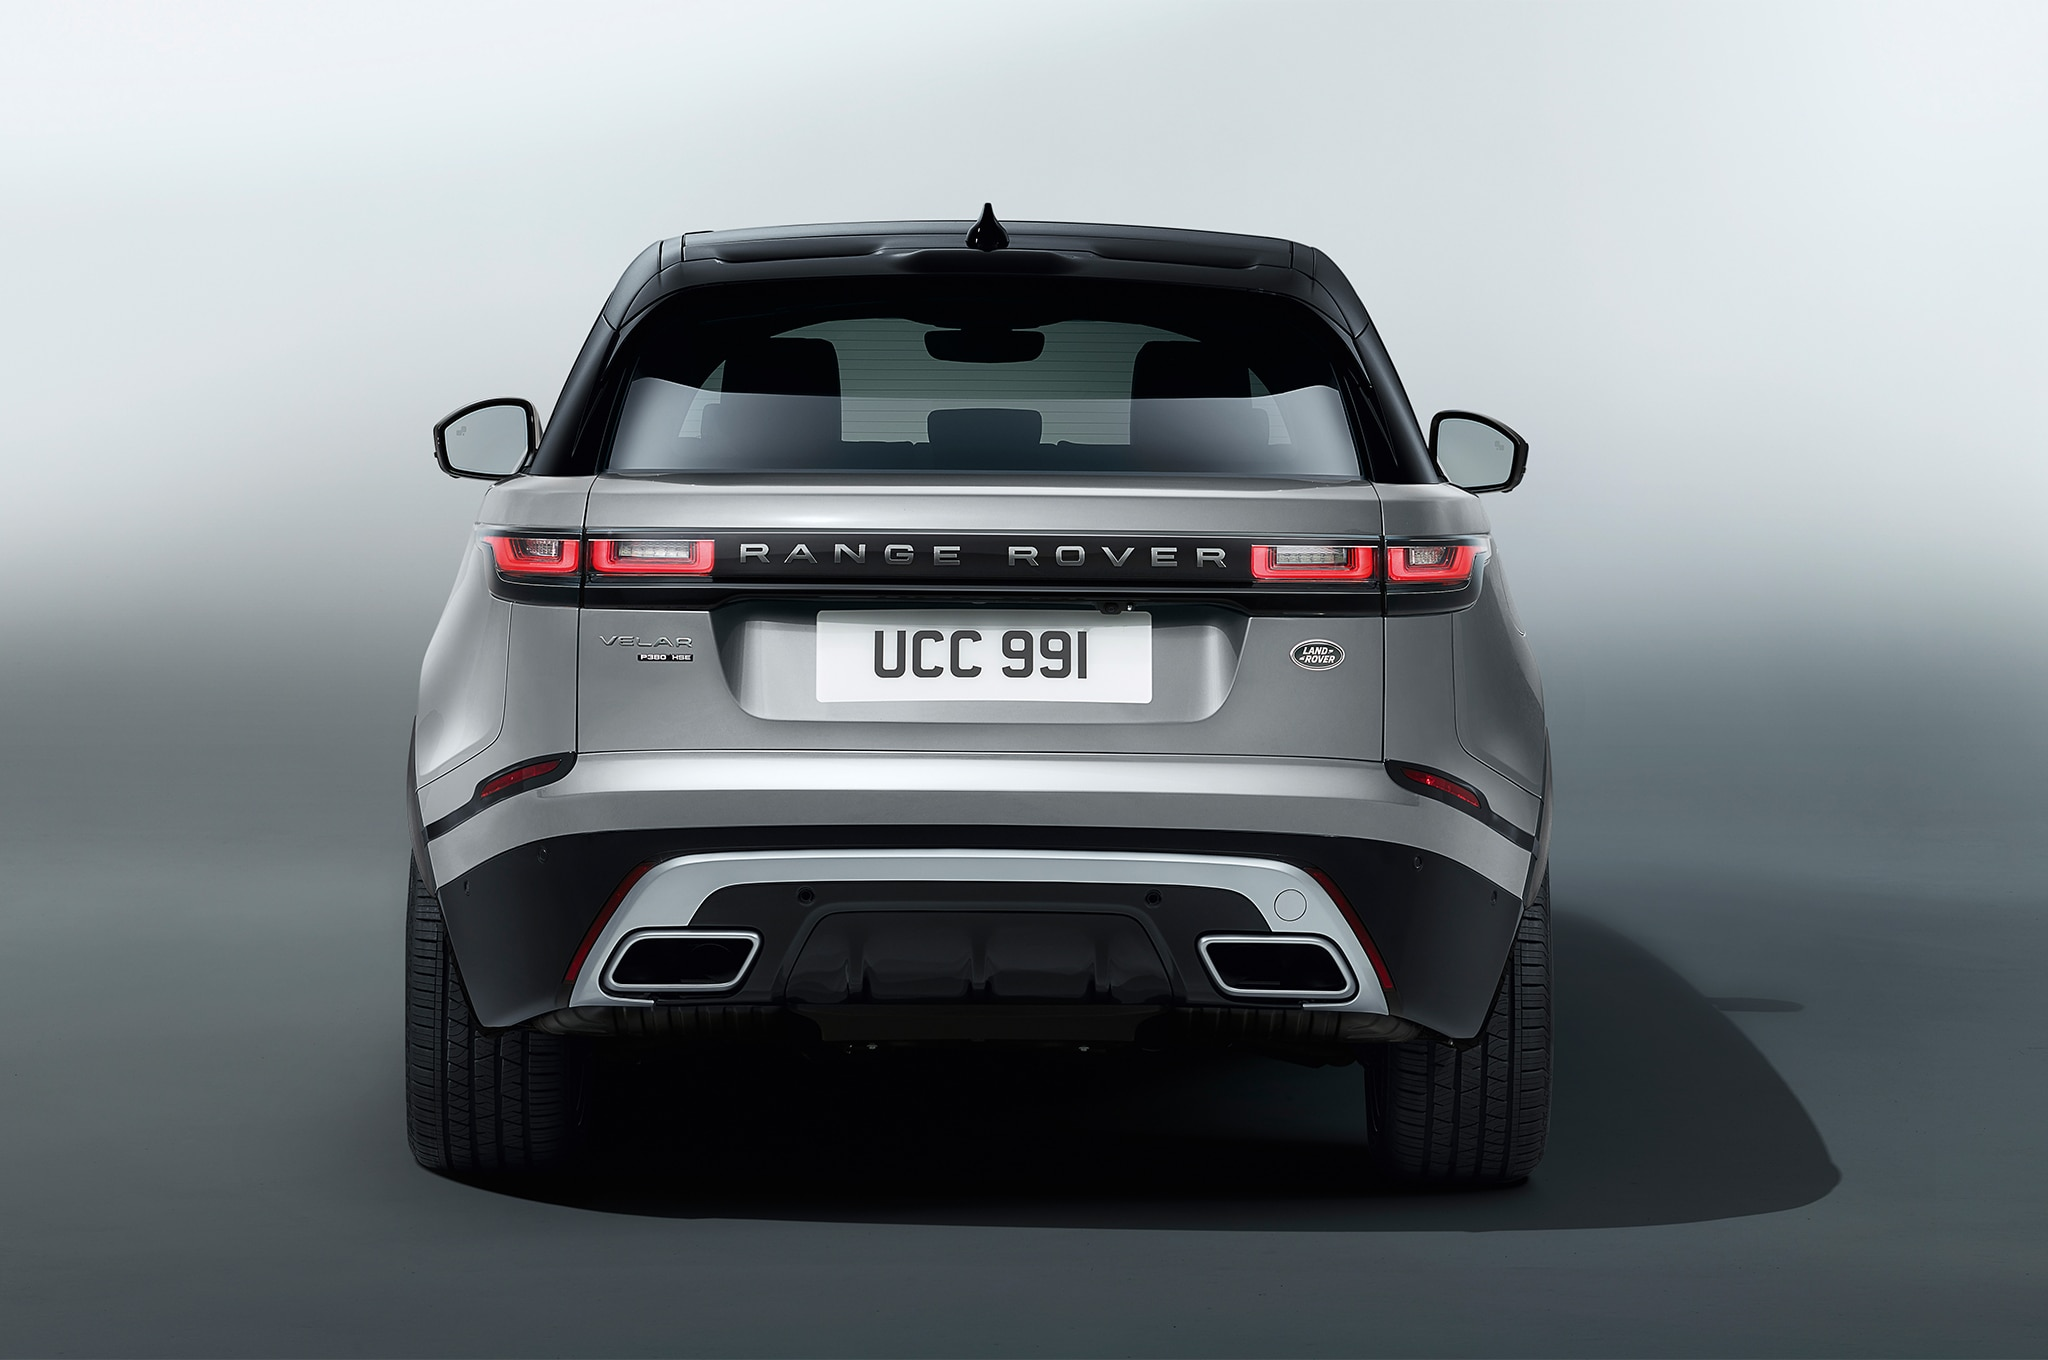 2018 Land Rover Range Rover Velar Rear End